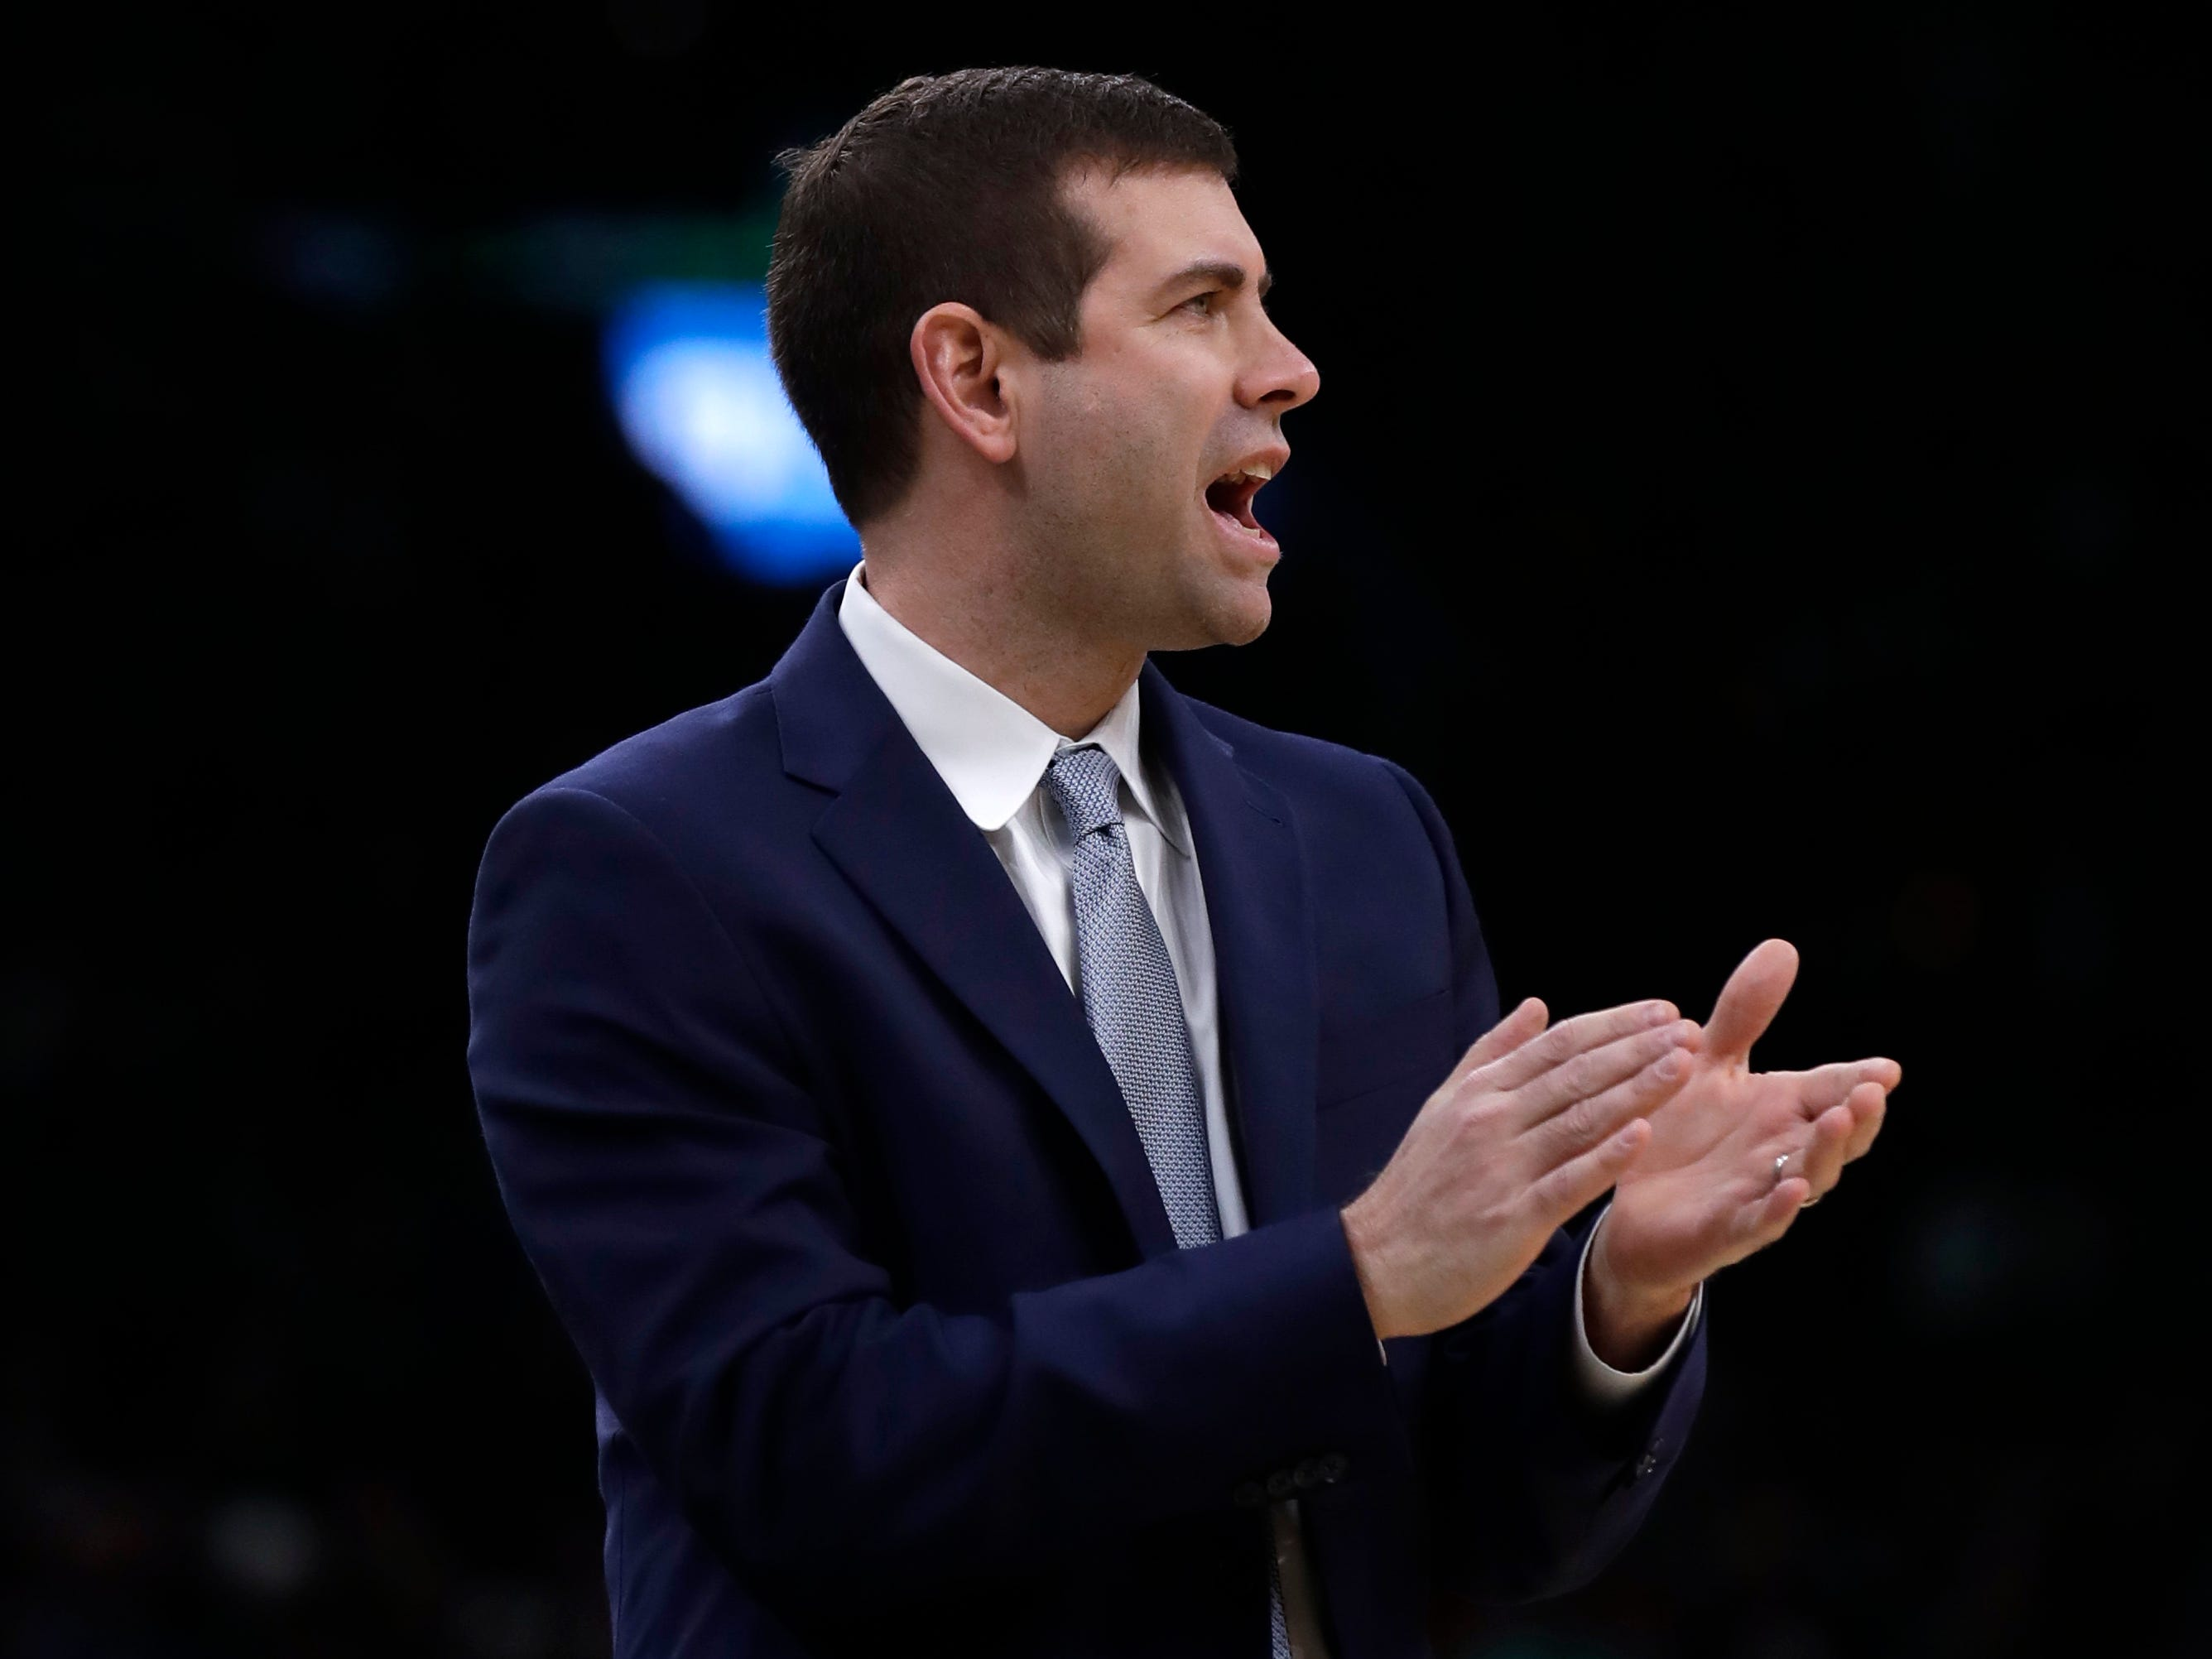 Boston Celtics head coach Brad Stevens calls to his players during the first quarter of an NBA basketball game against the Indiana Pacers in Boston, Wednesday, Jan. 9, 2019.